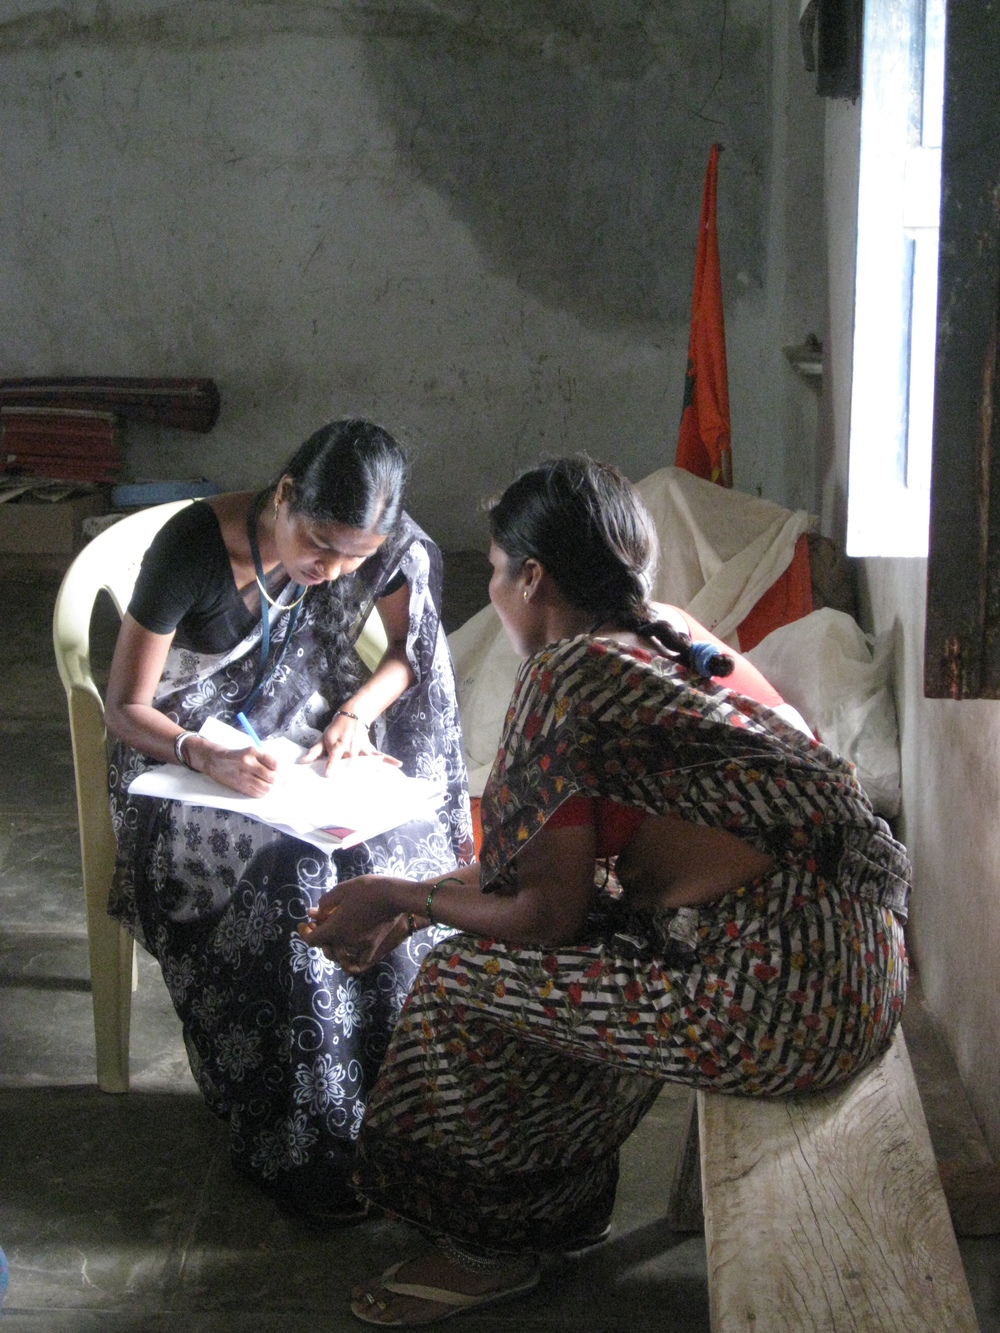 Antenatal check-up, Telangana, India